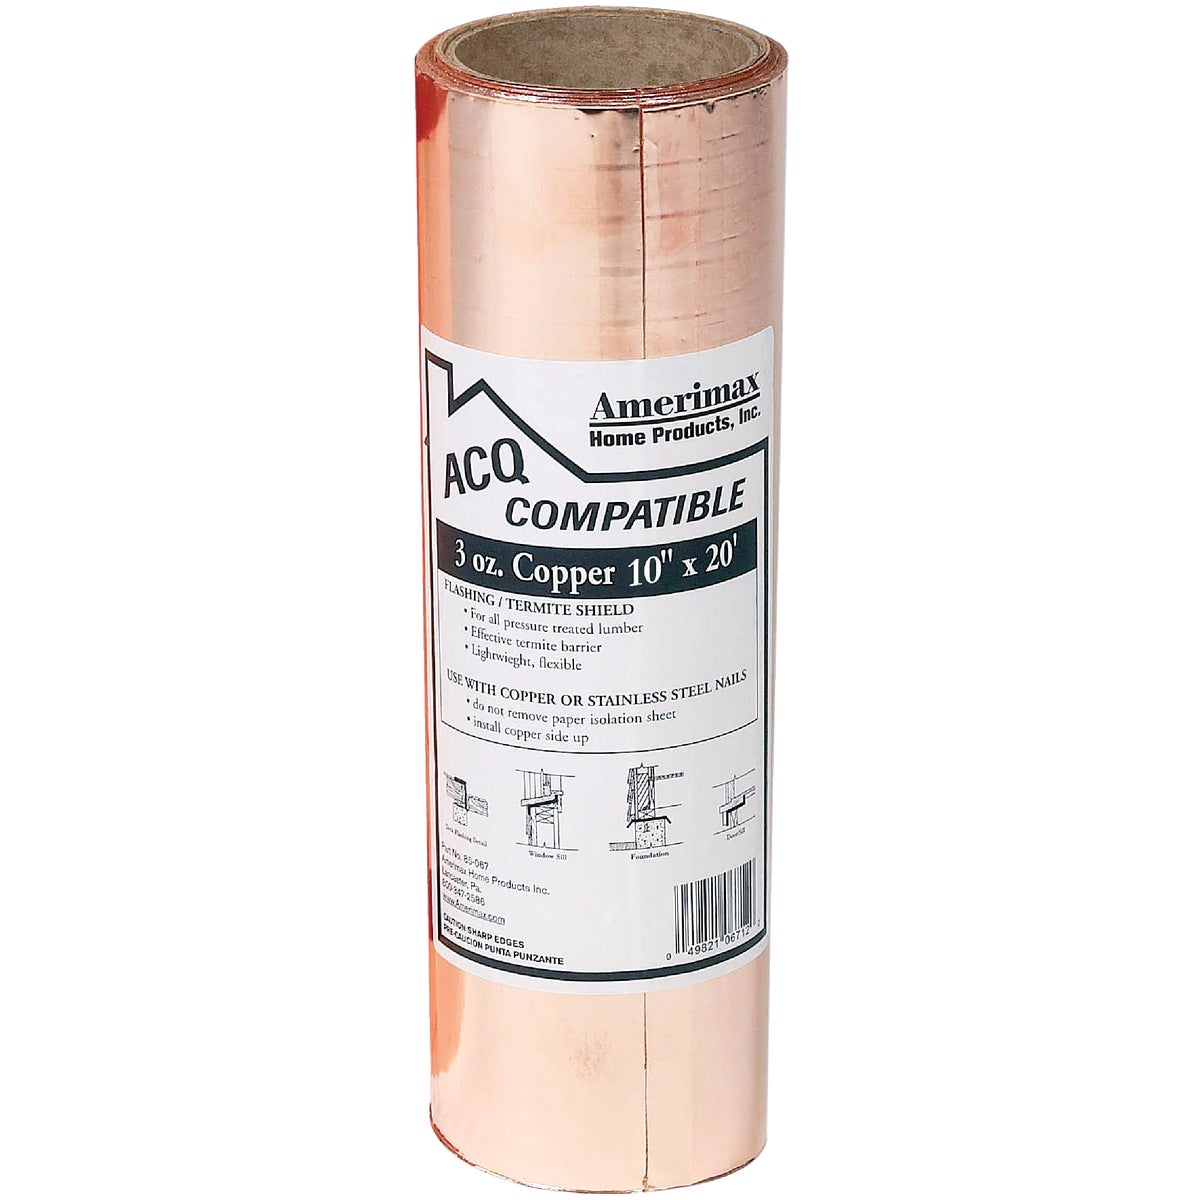 10X20 3OZ COPPER VALLEY - 85067 by Amerimax Home Prod